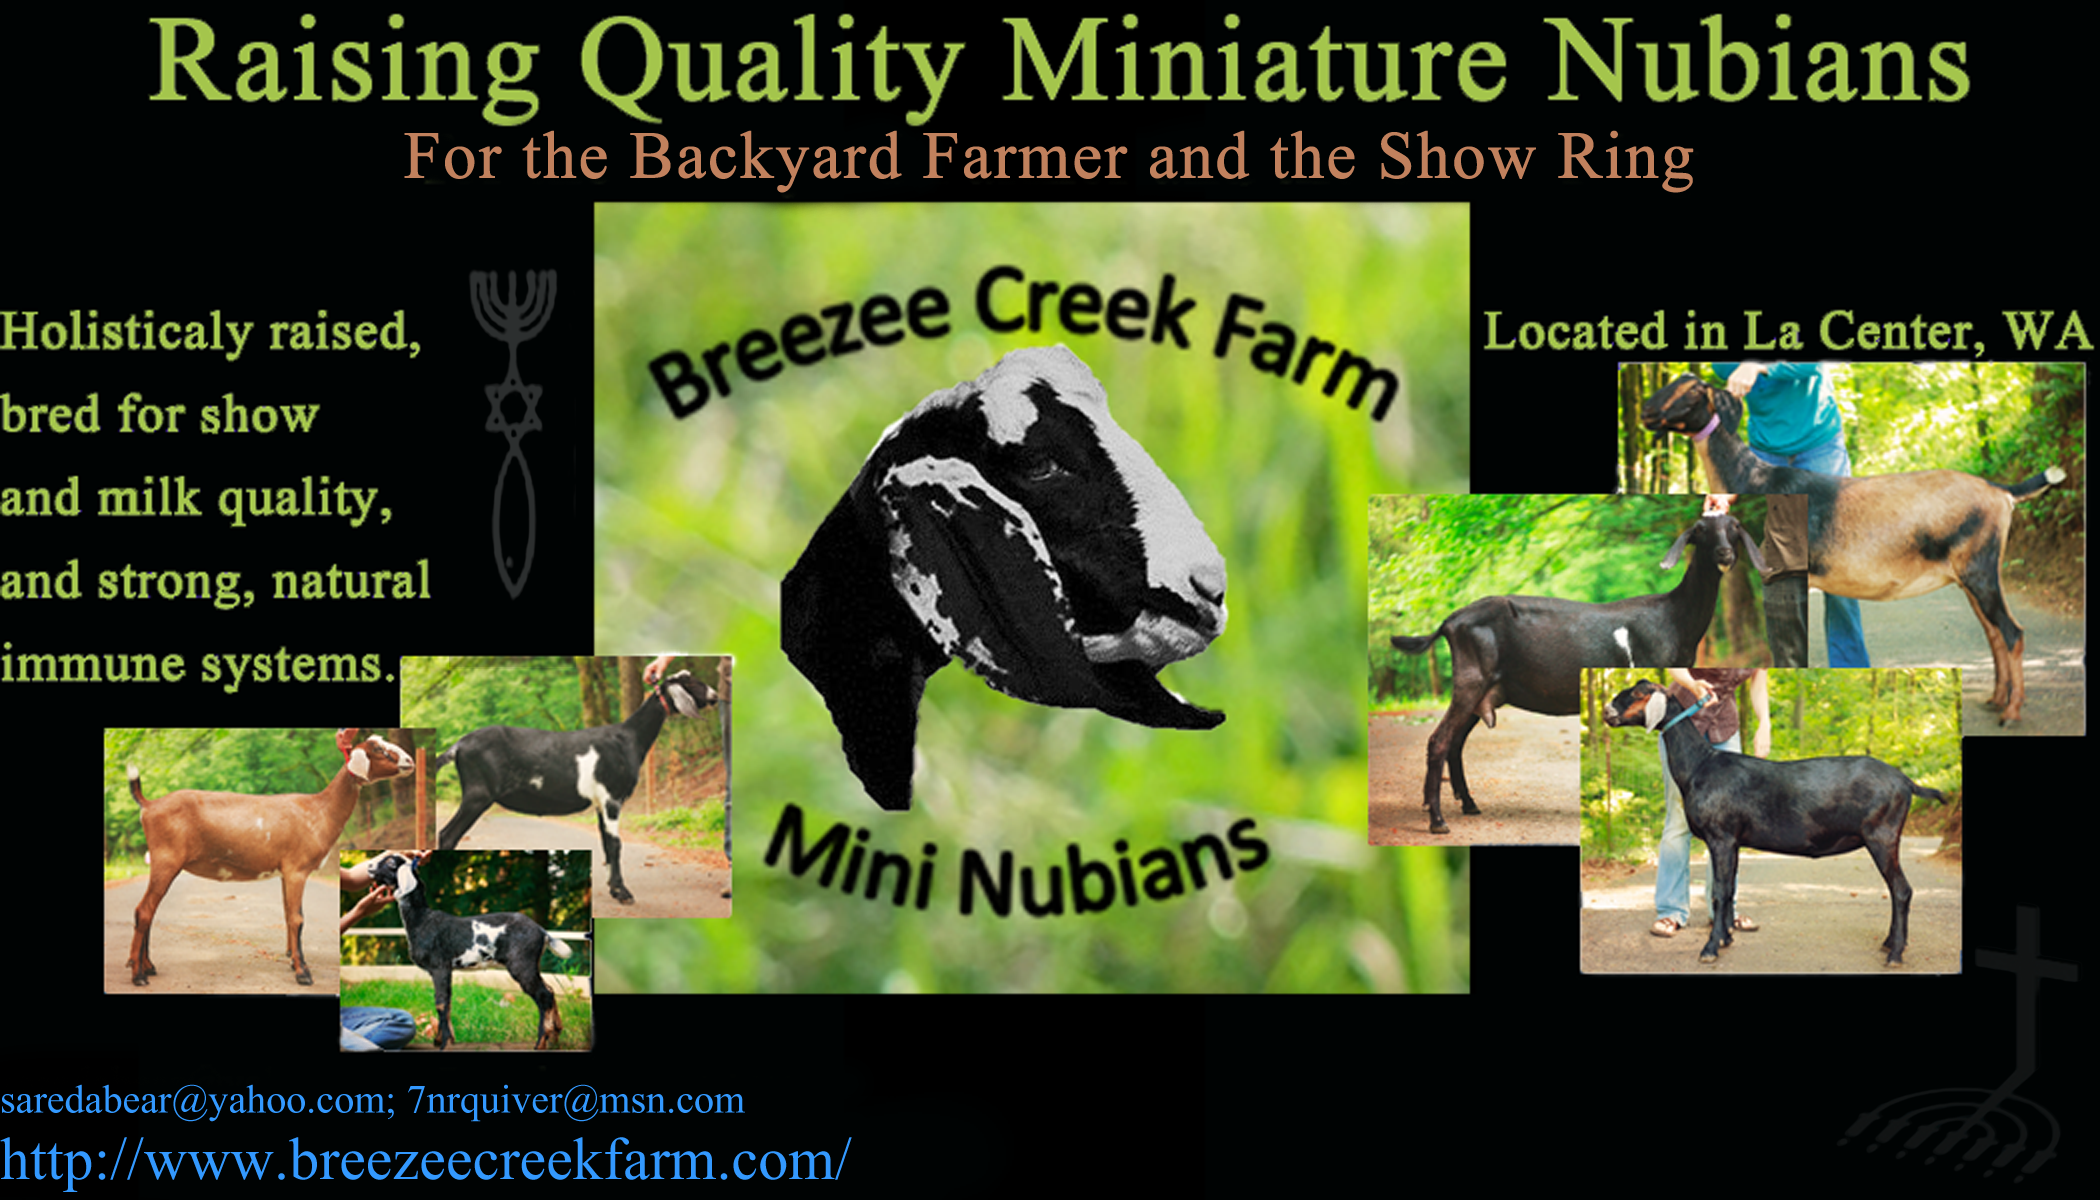 Breezee Creek Farm | Miniature Nubian Dairy Farm